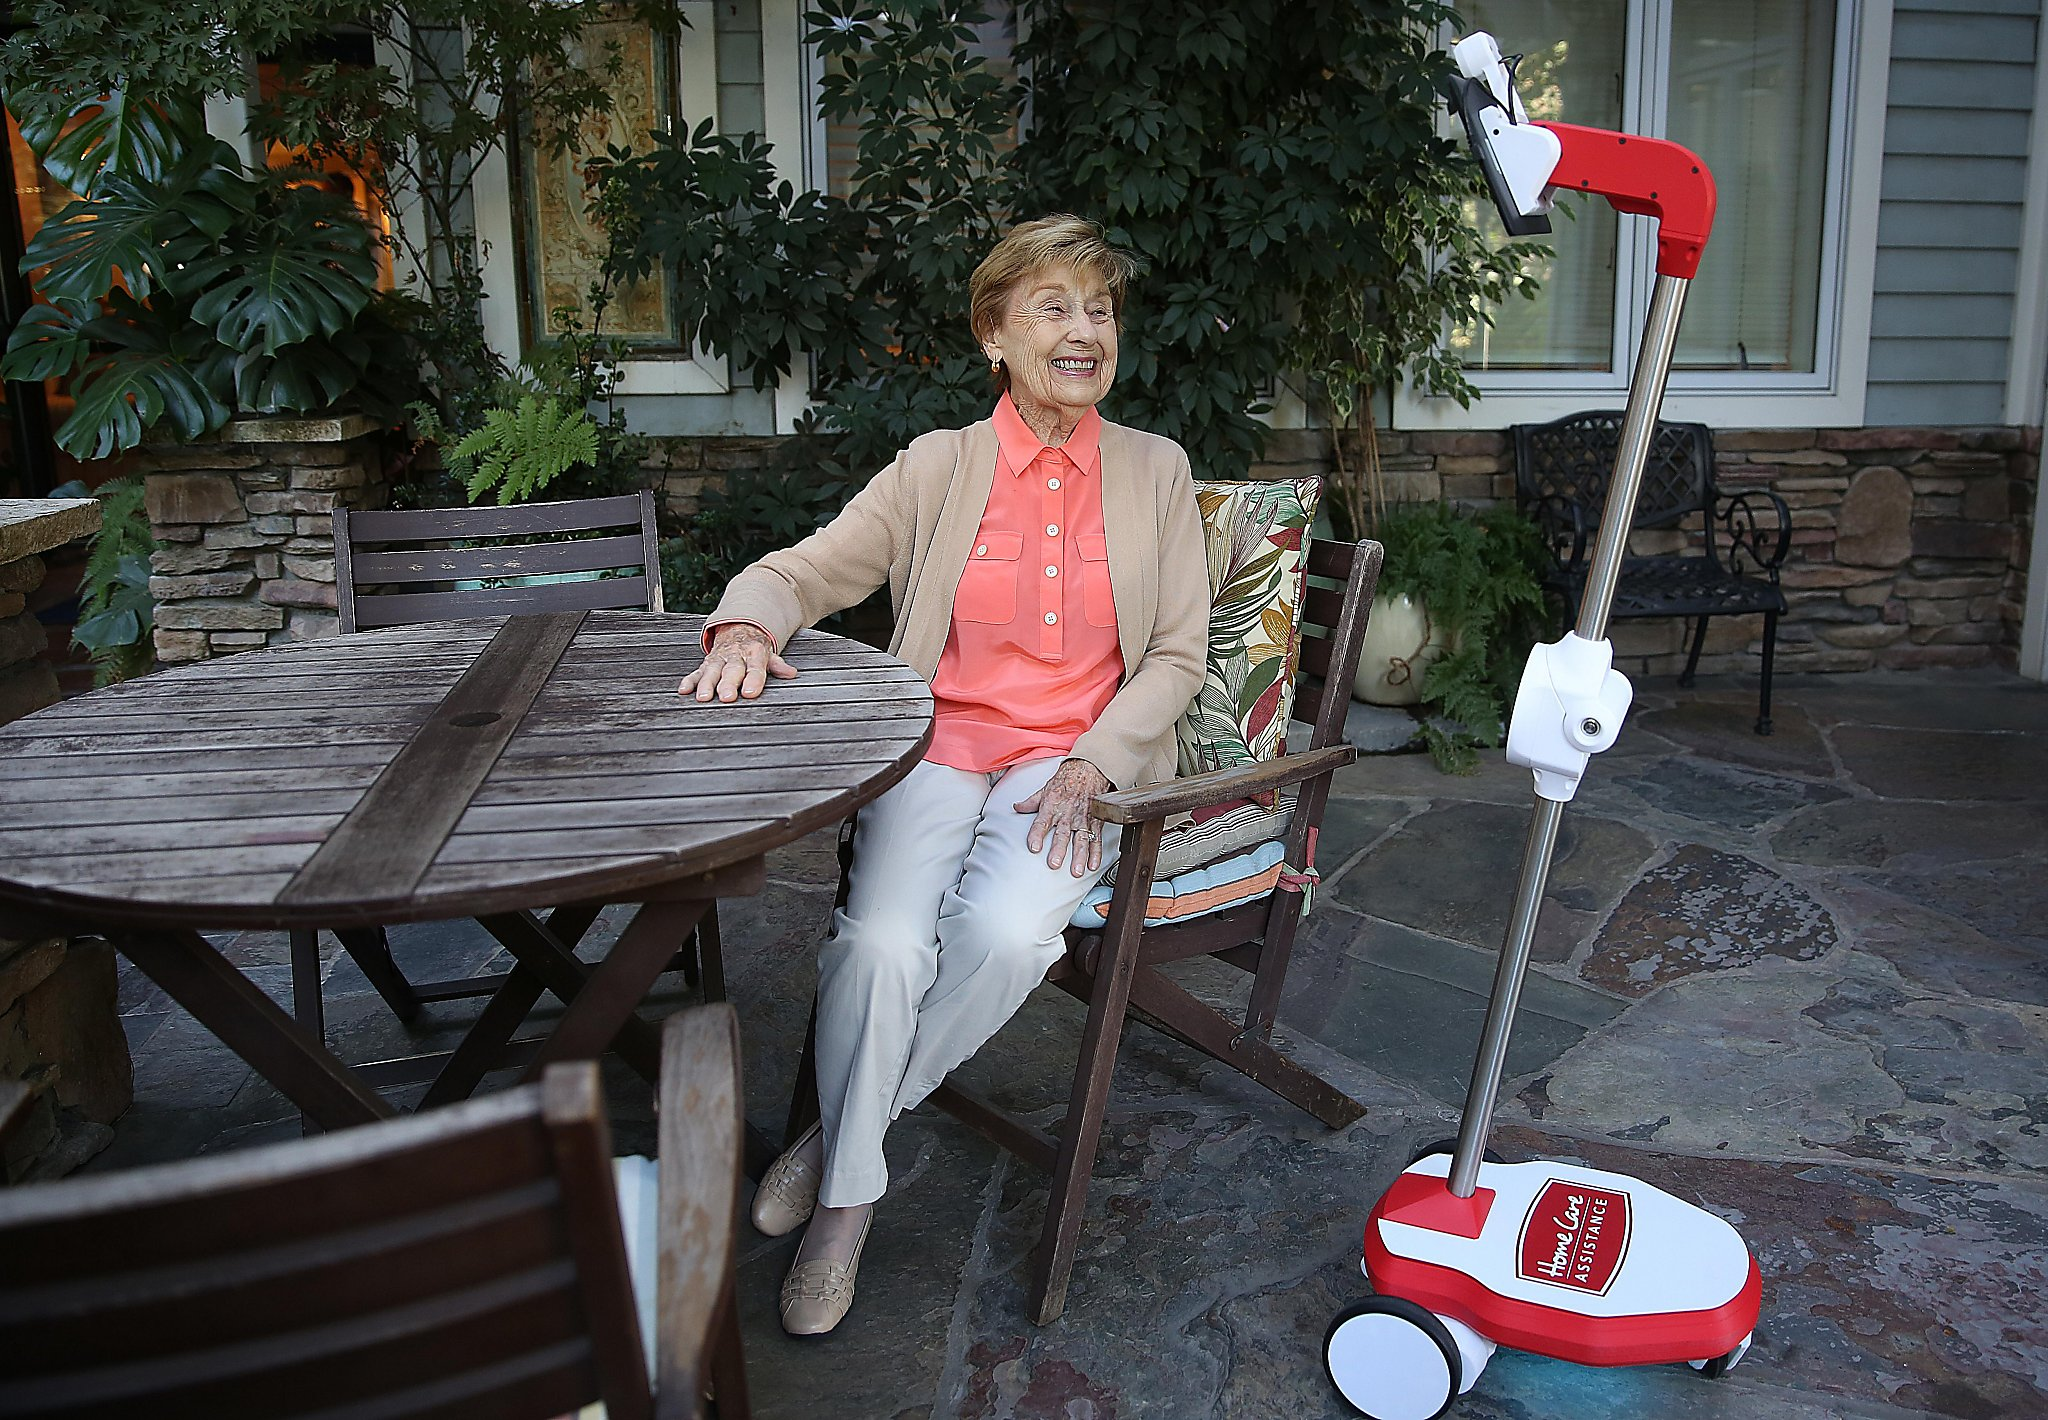 90 Year Old Woman Porn Pretty robots to help families check in on bay area seniors - san